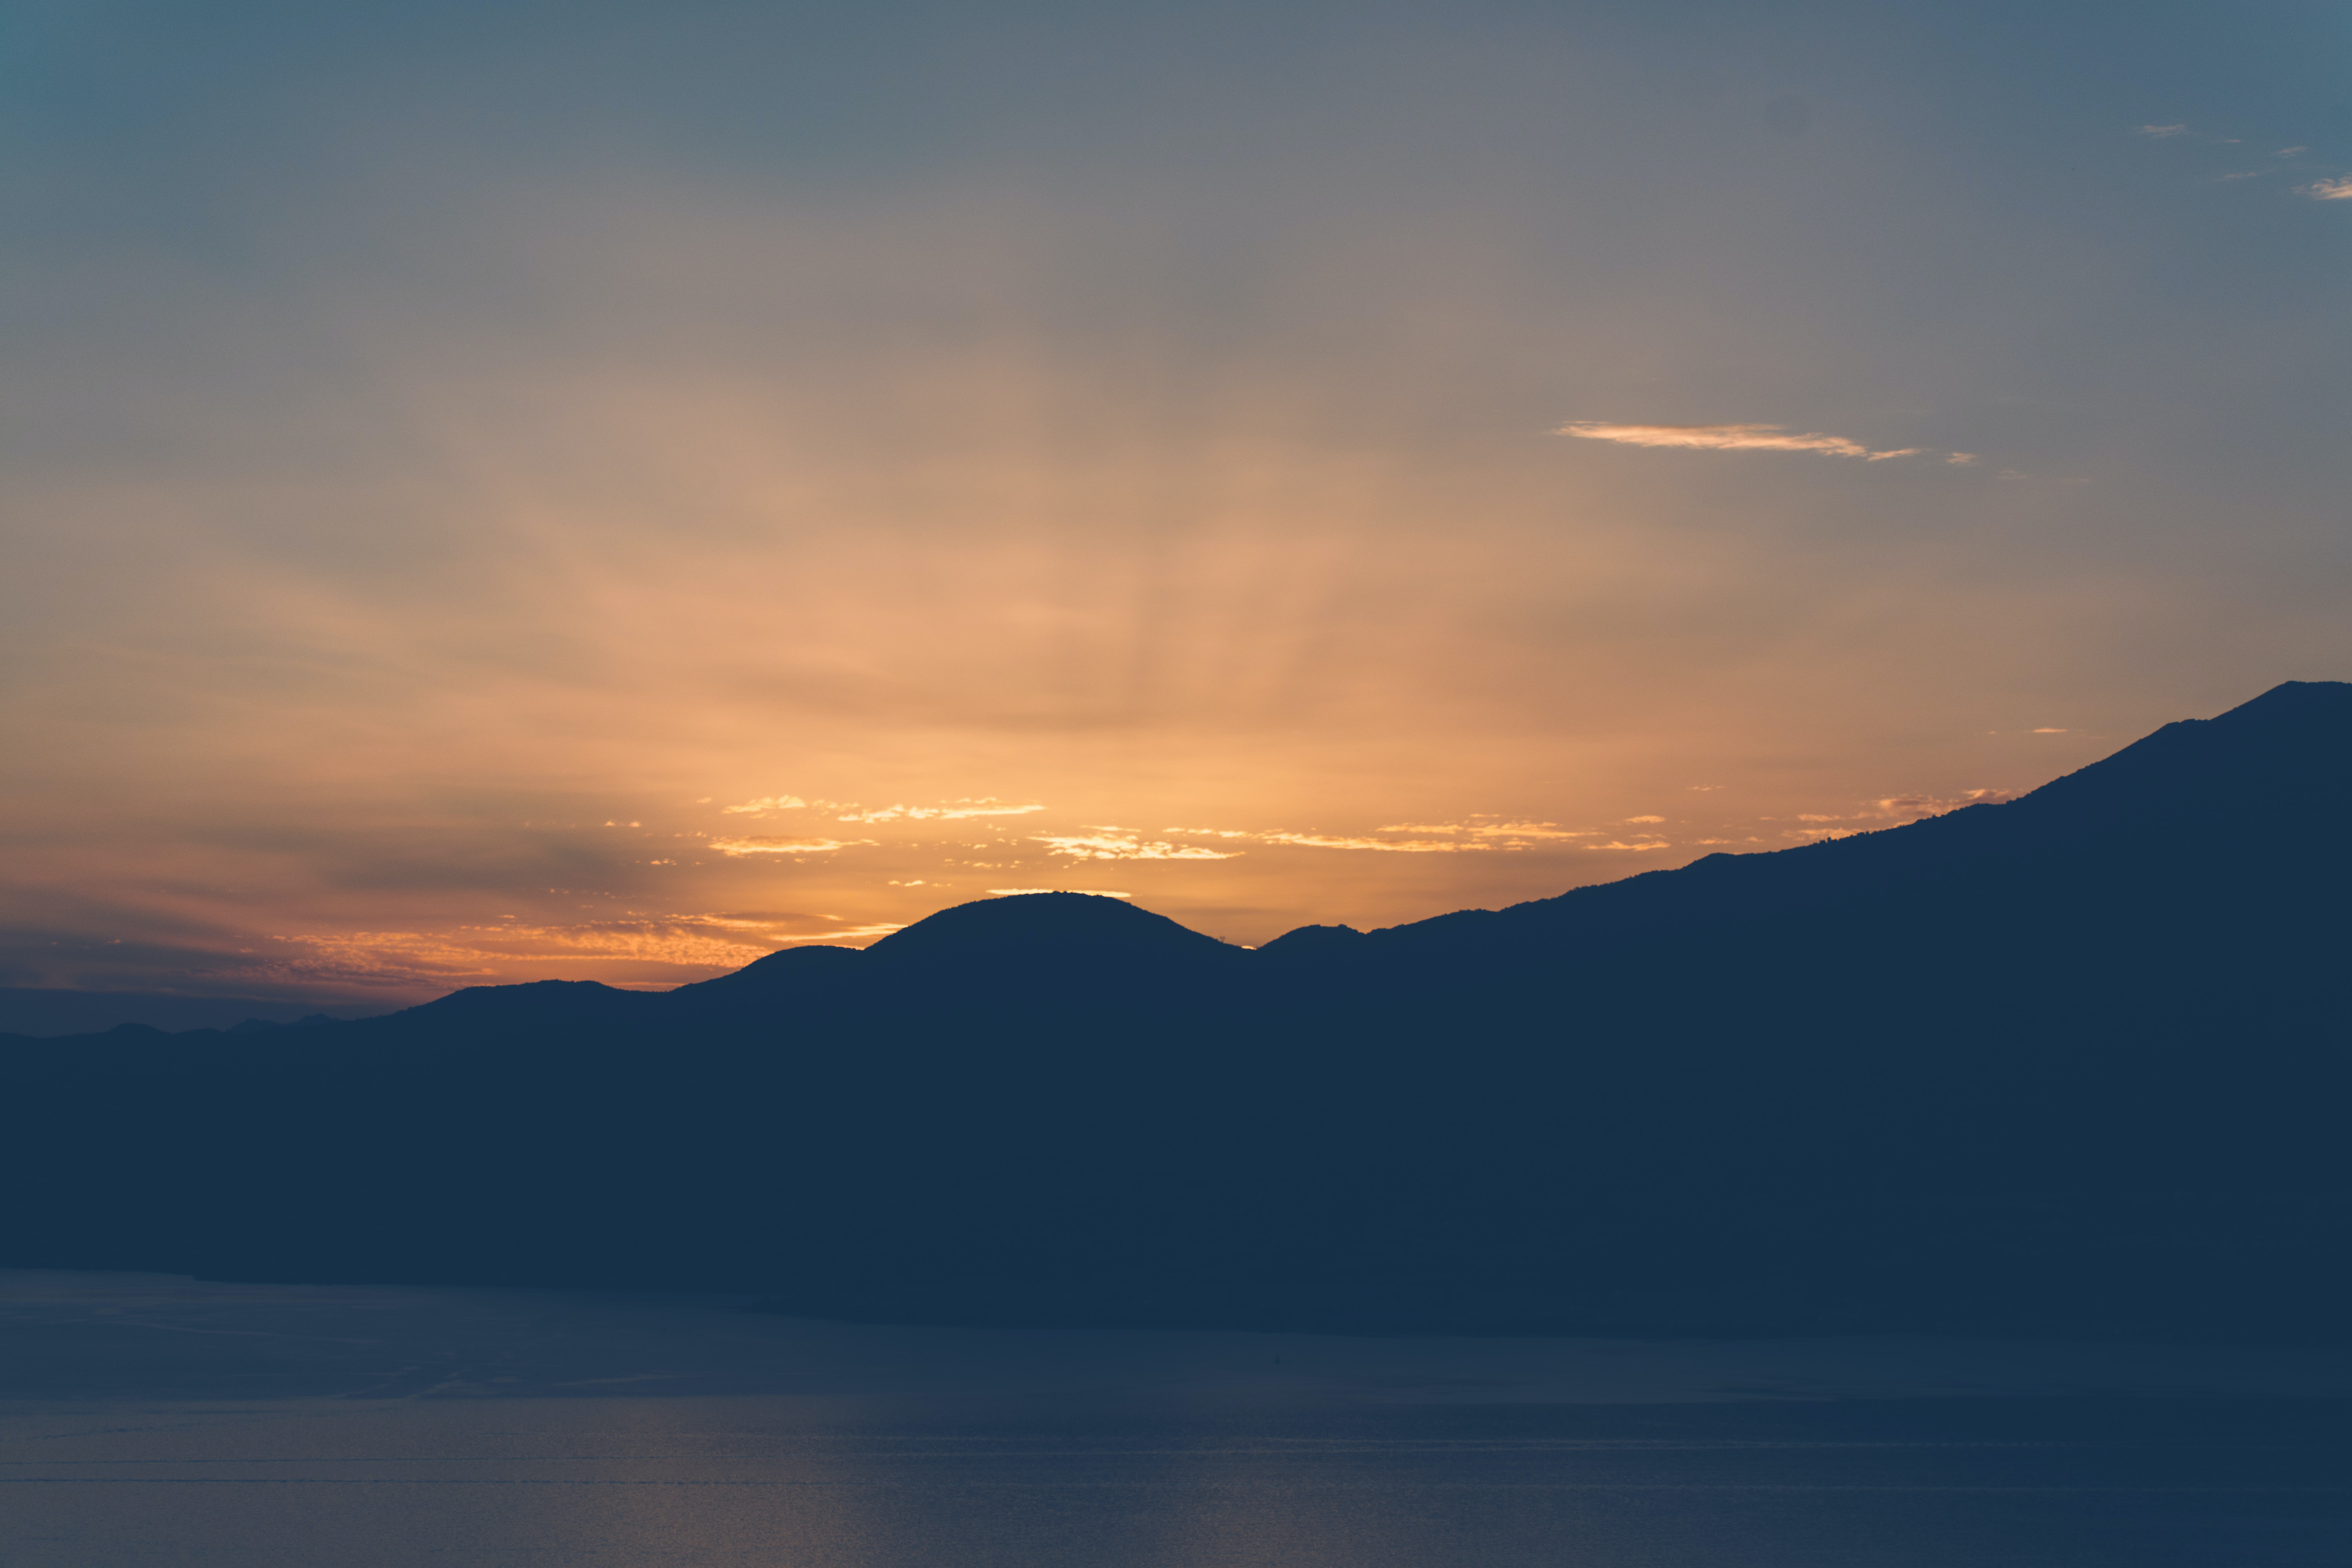 silhouette of mountains near body of water during golden hour